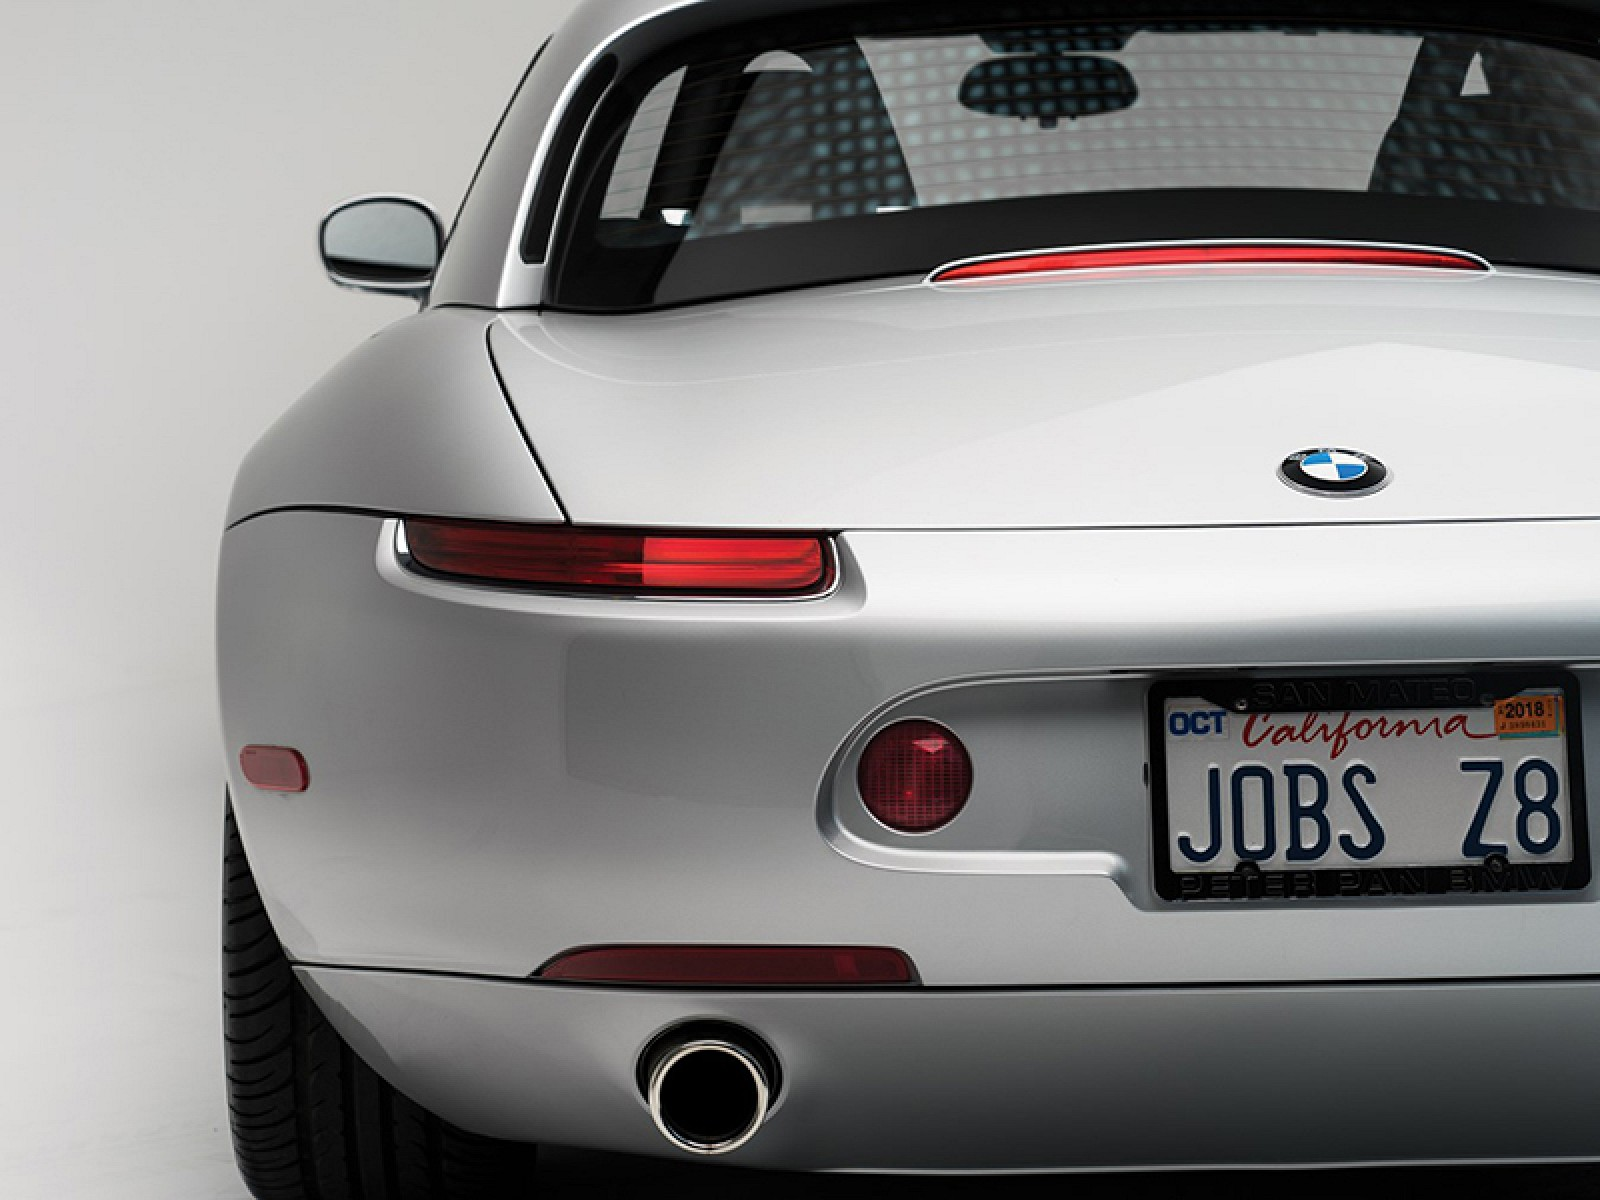 2018 bmw z8.  bmw bmw z8 owned by steve jobs estimated to fetch up 400000 at auction  next month  mac rumors in 2018 bmw z8